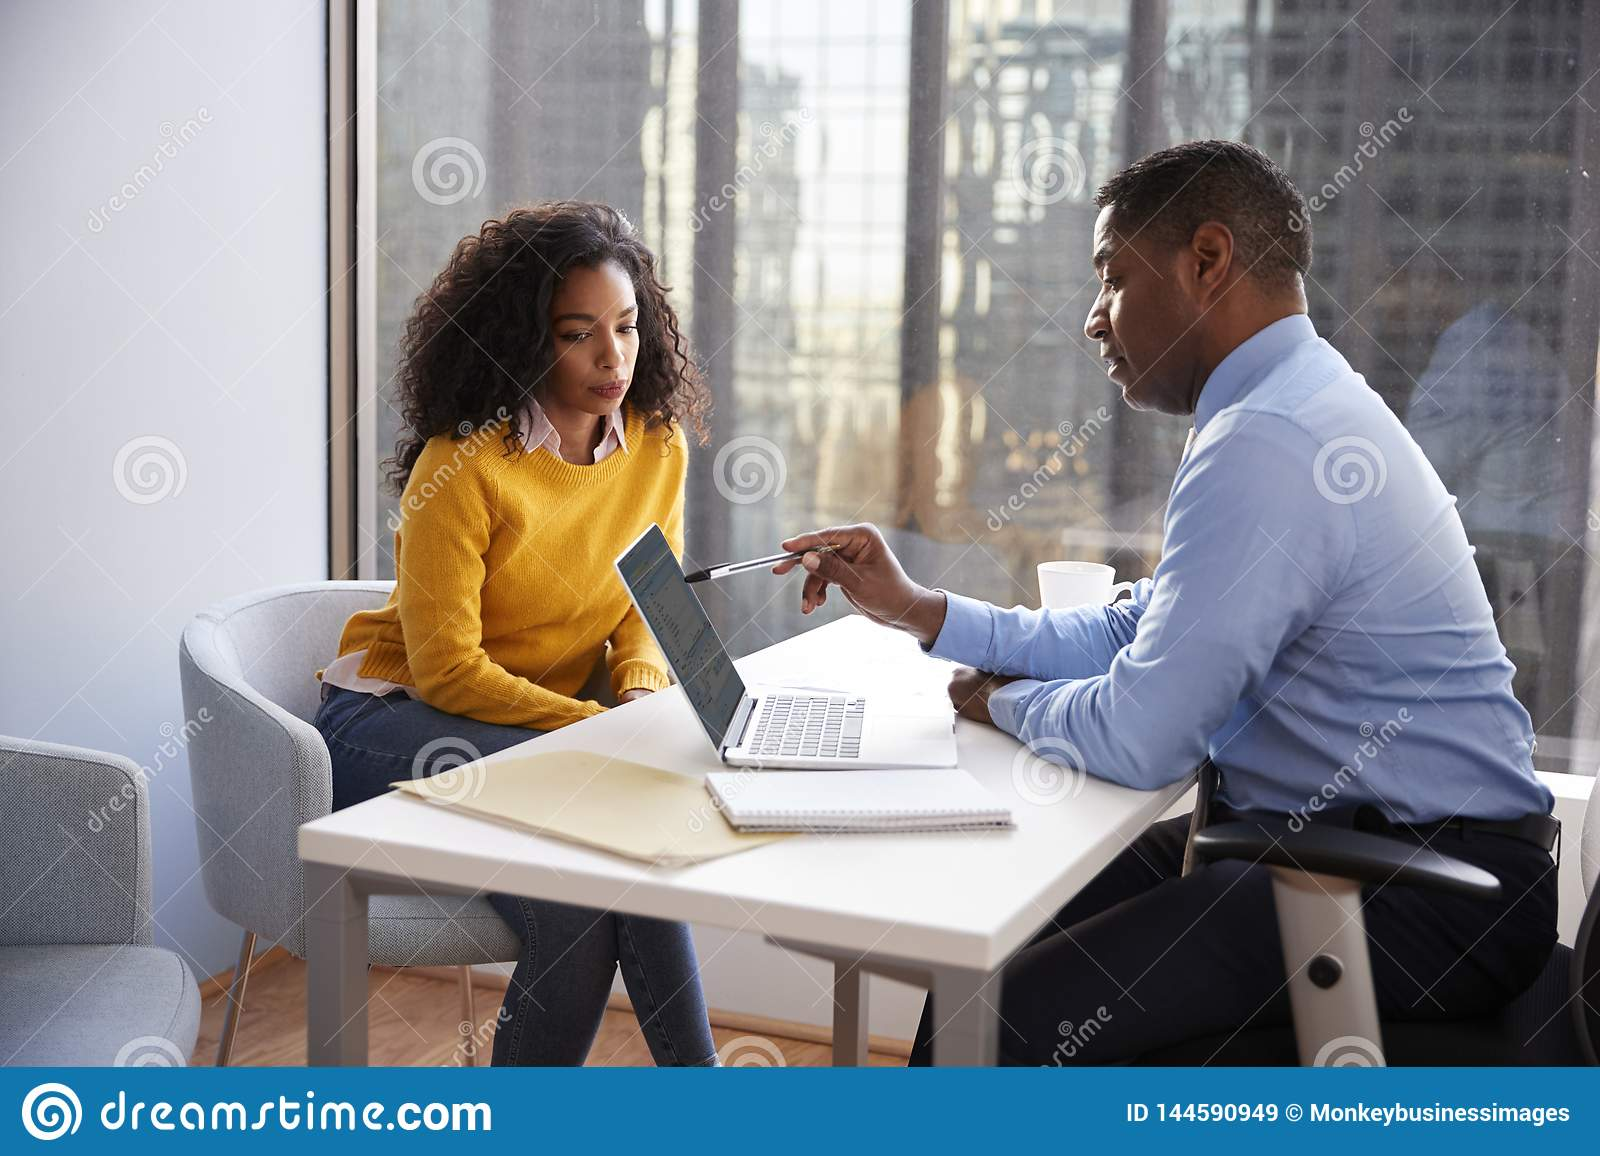 Woman Meeting With Male Financial Advisor Relationship Counsellor In Office